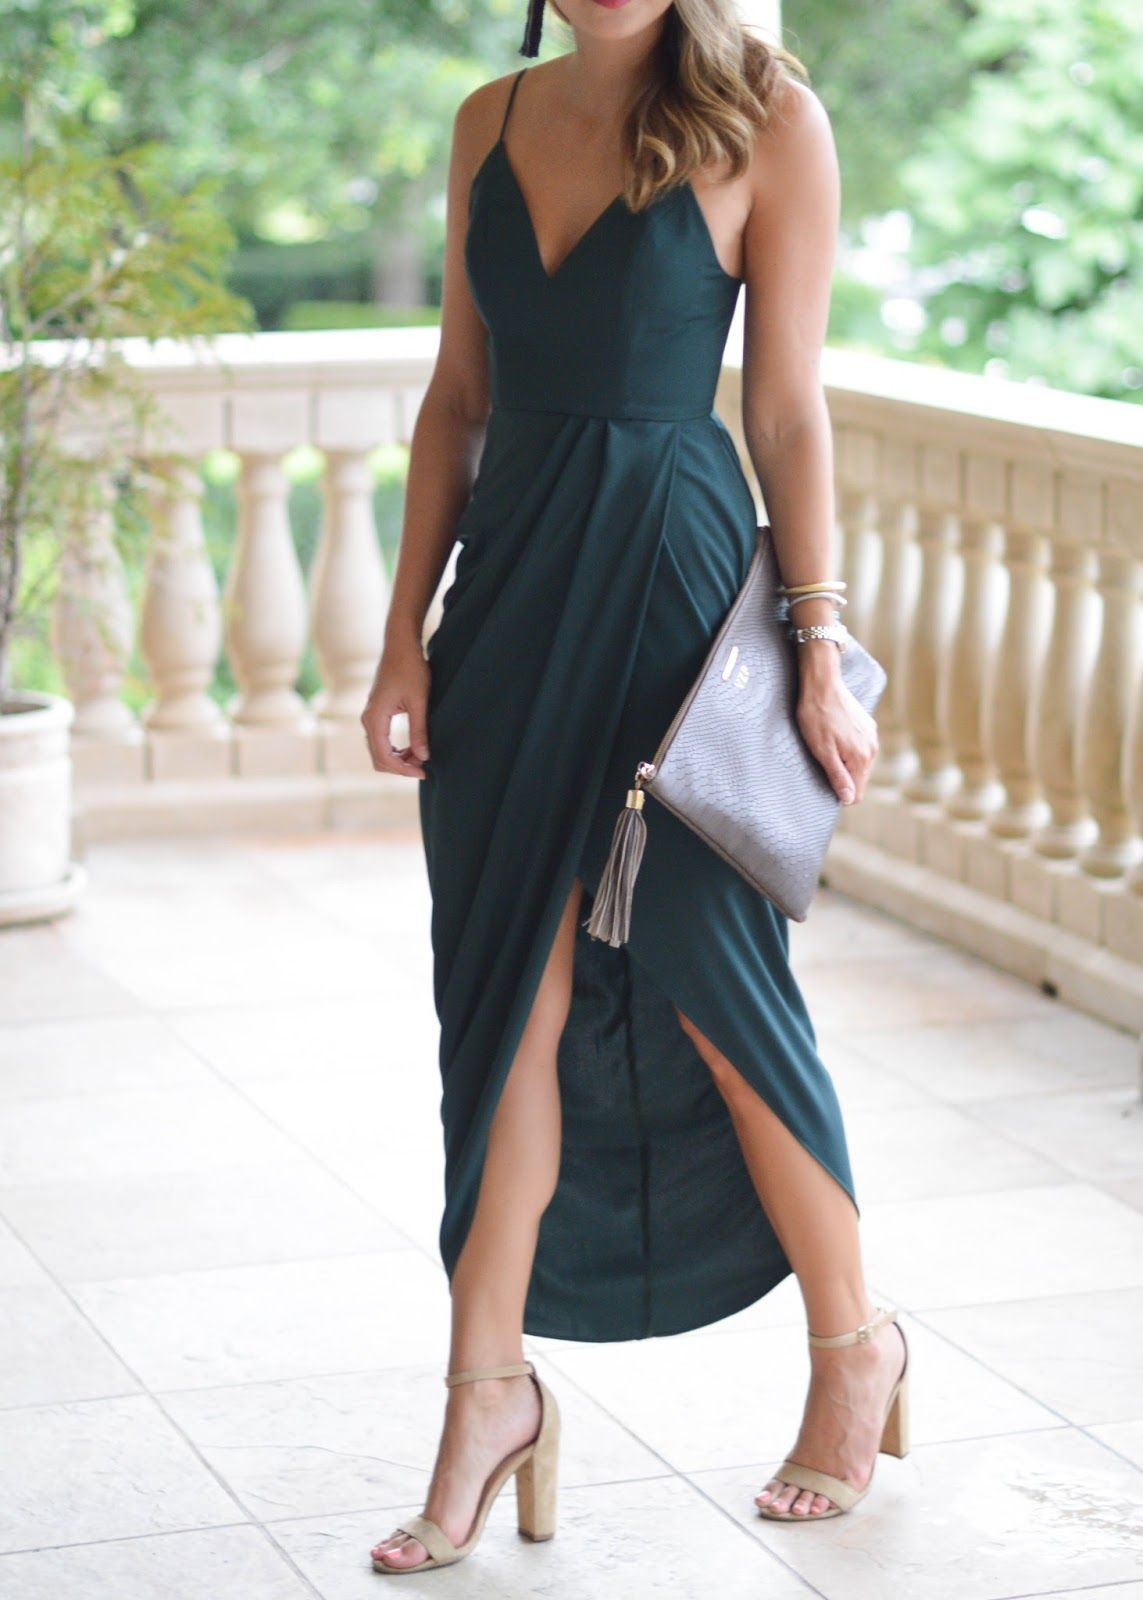 That One Dress Southern Style A Life Style Blog Maxi Dress Wedding Maxi Dress Wedding Guest Guest Attire